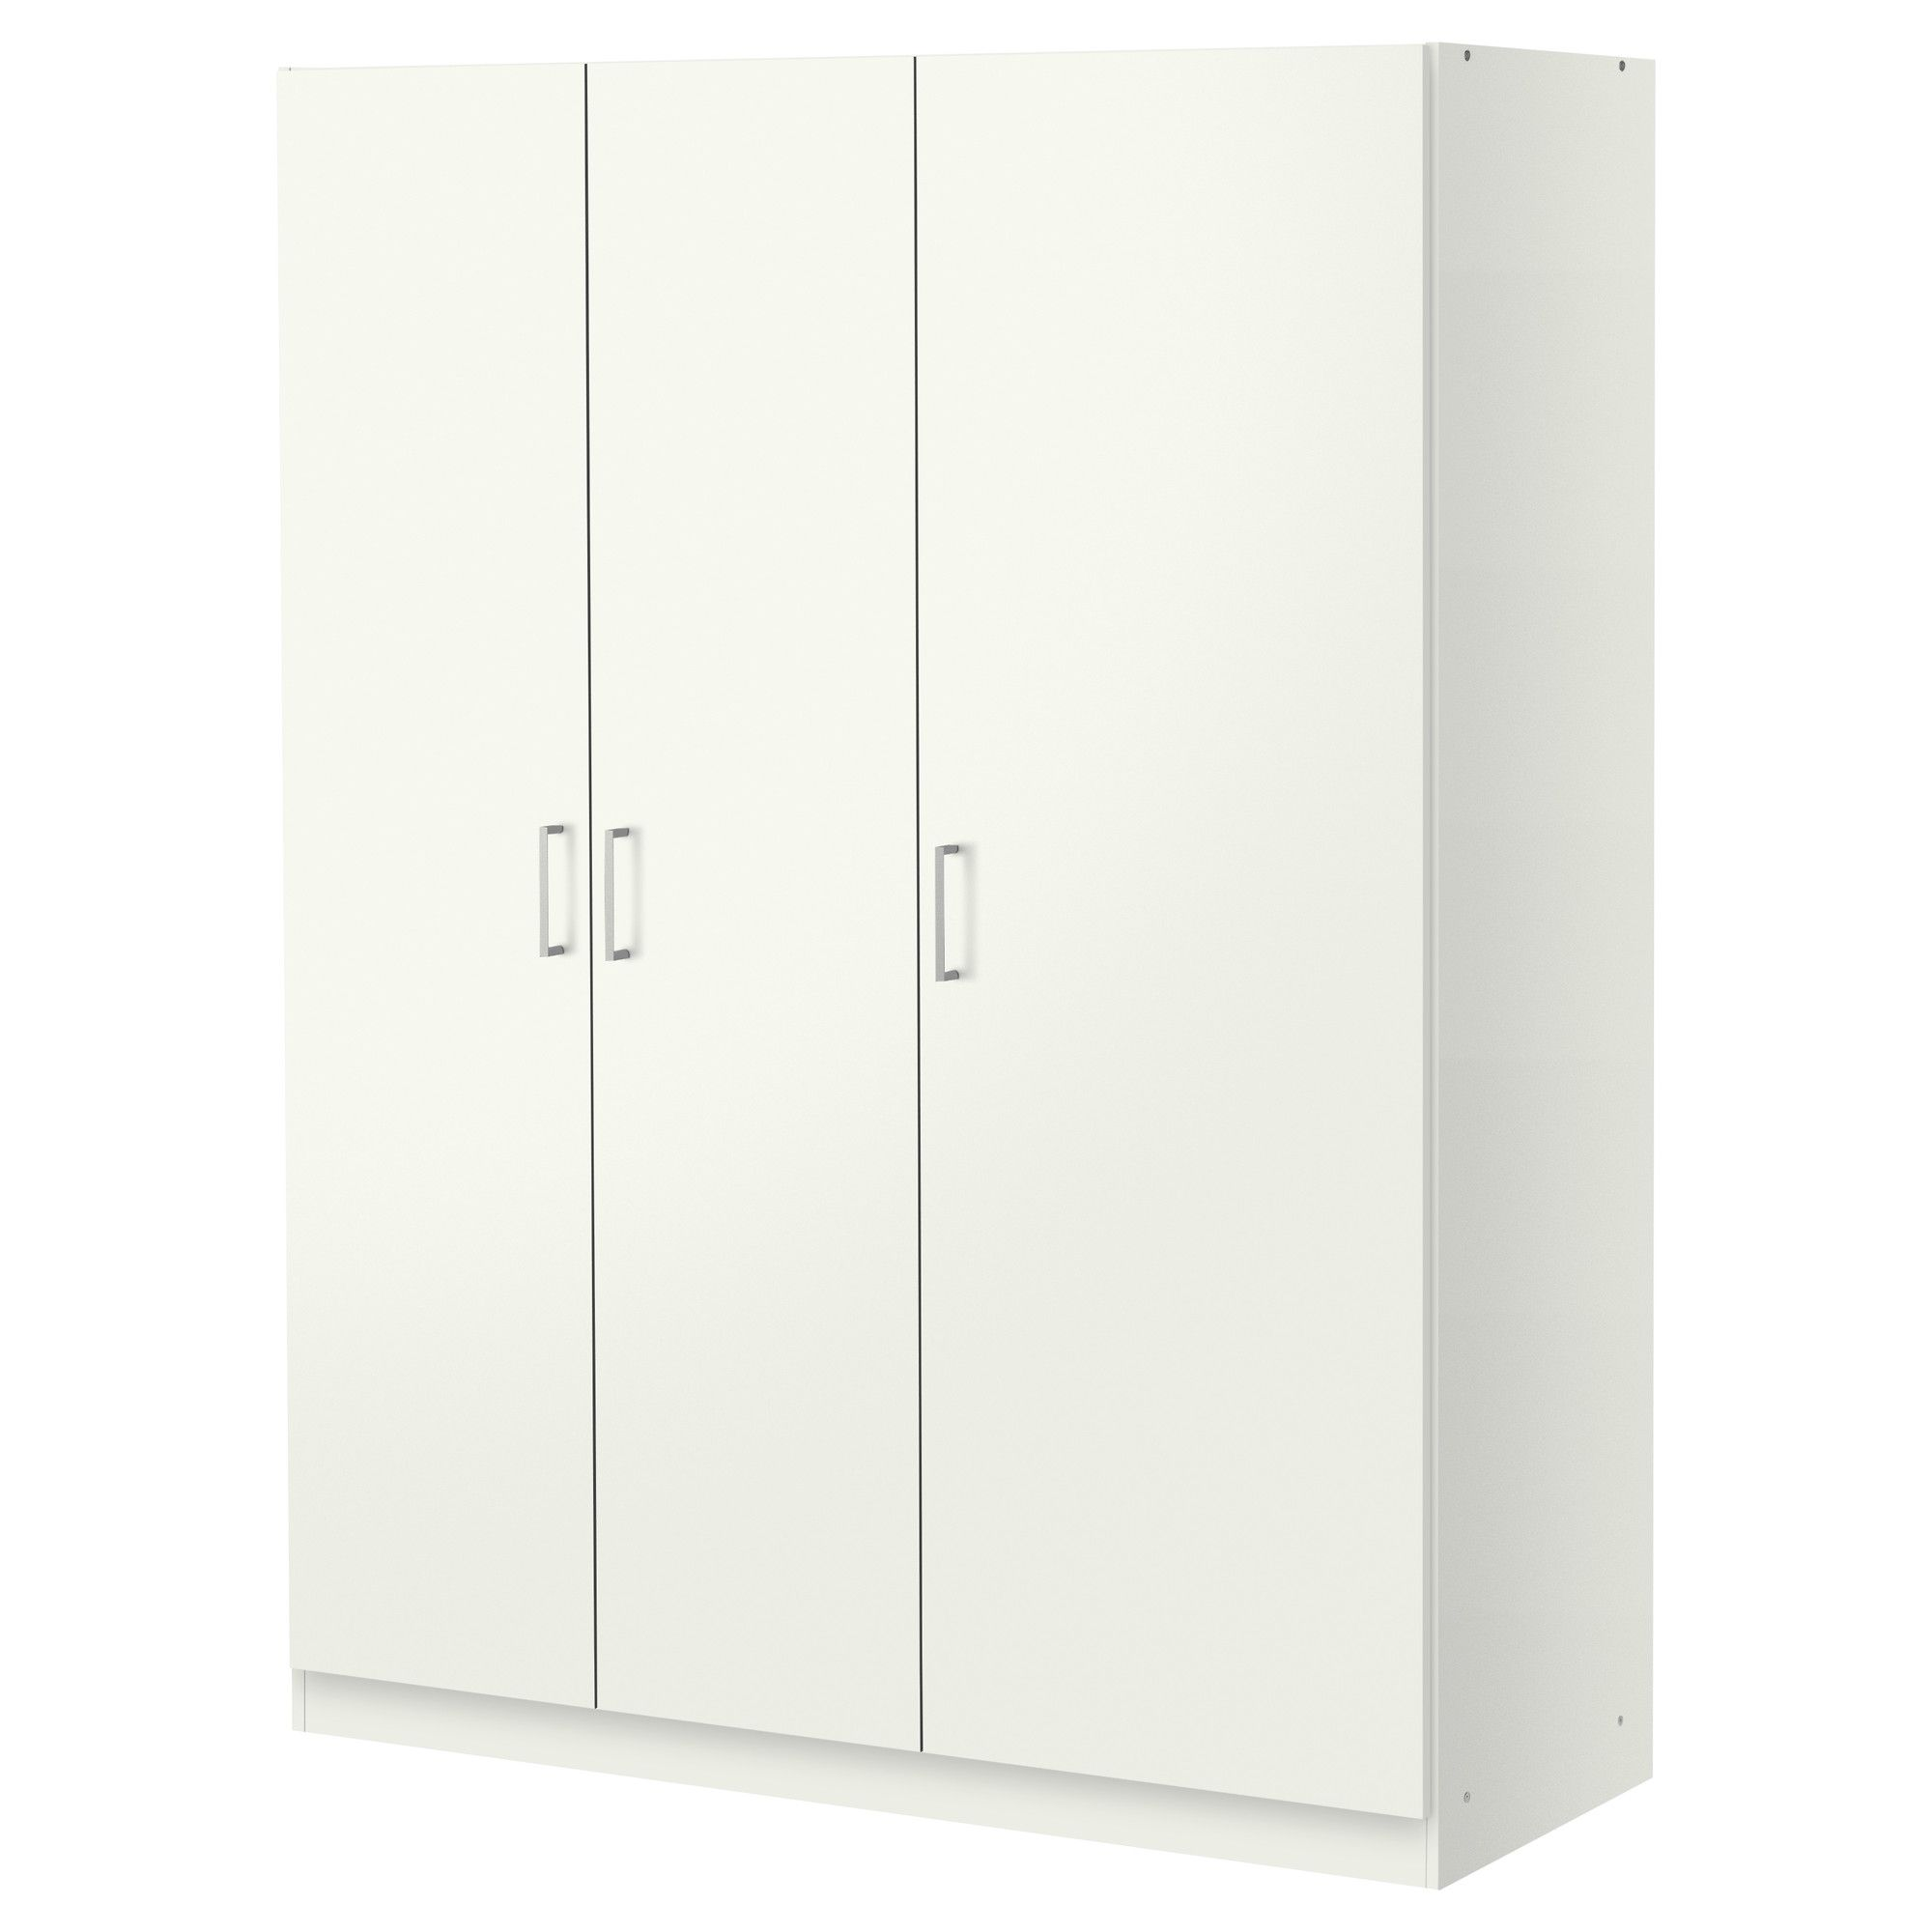 Kleiderschrank ikea aspelund  IKEA - DOMBÅS, Wardrobe, , Adjustable hinges ensure that the doors ...